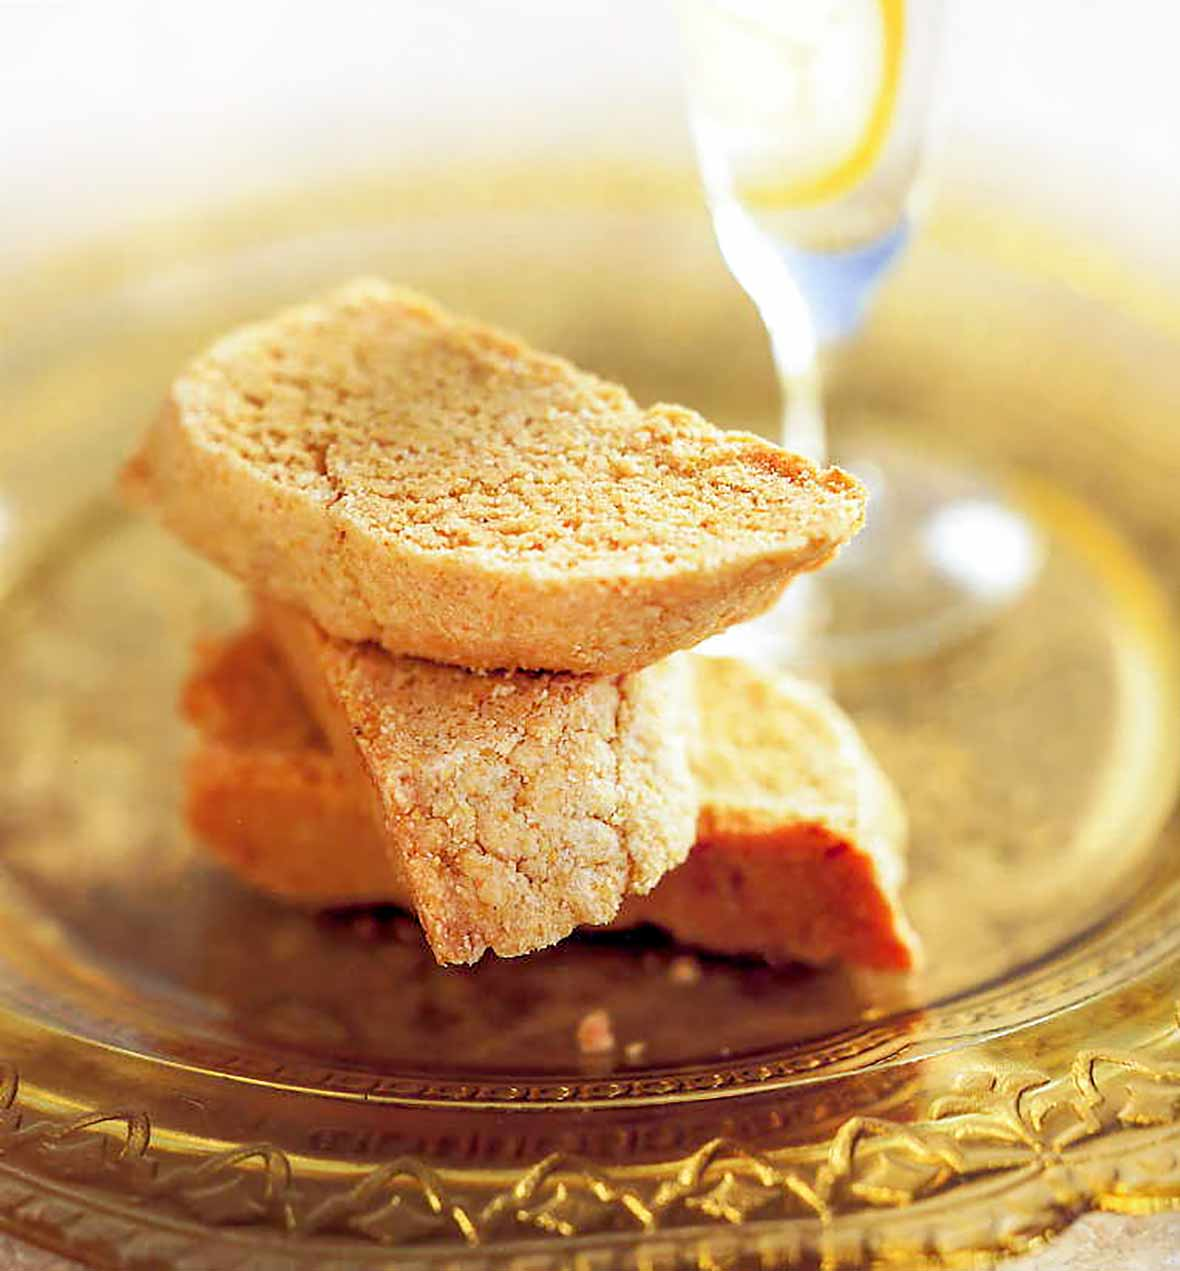 The half-moon biscotti cookies on a yellow glass plate